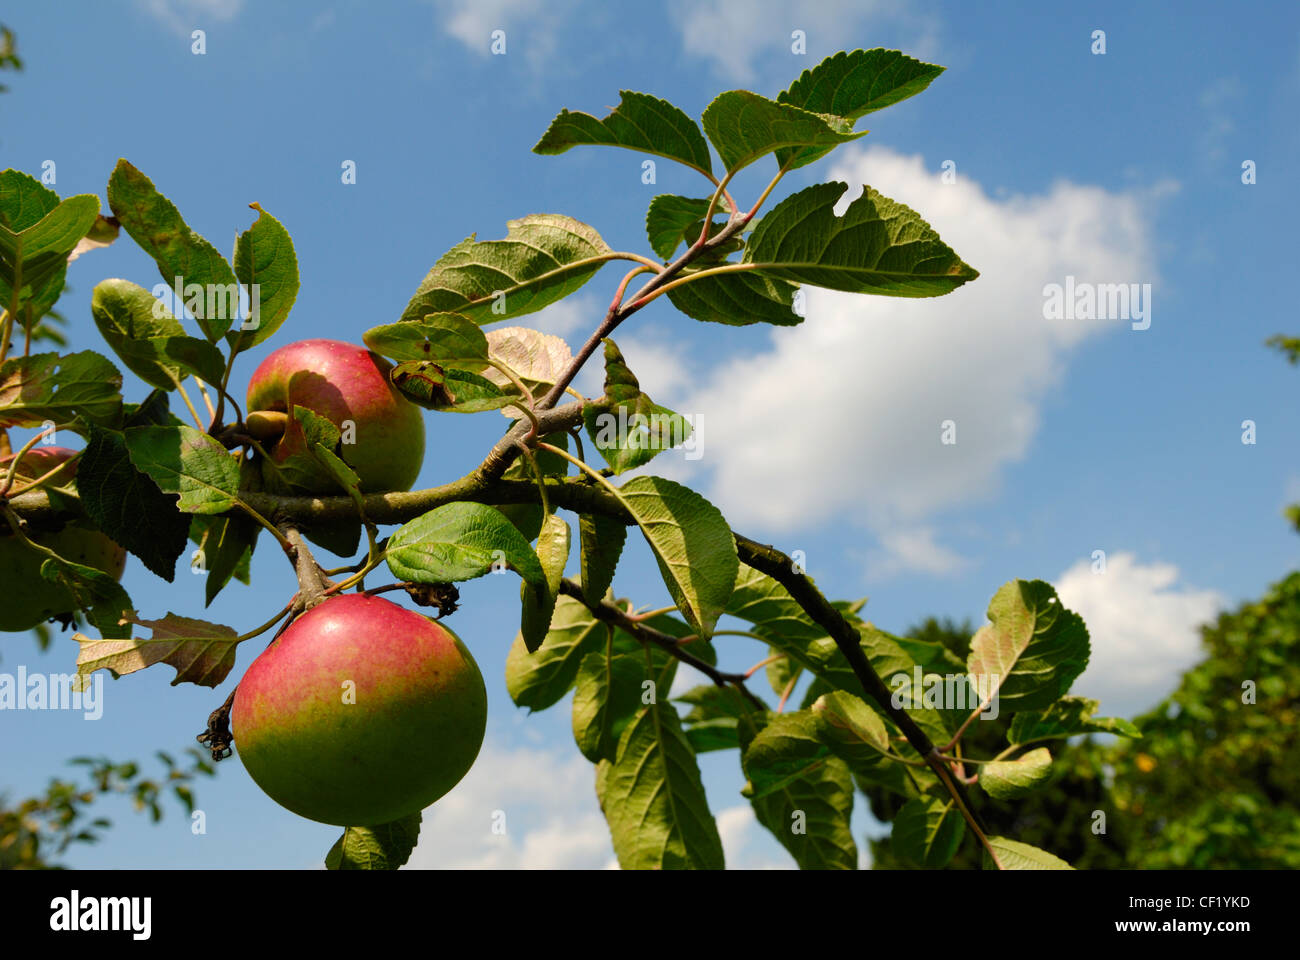 Close up of an apple growing in an orchard in Kent, known as the garden of England. - Stock Image